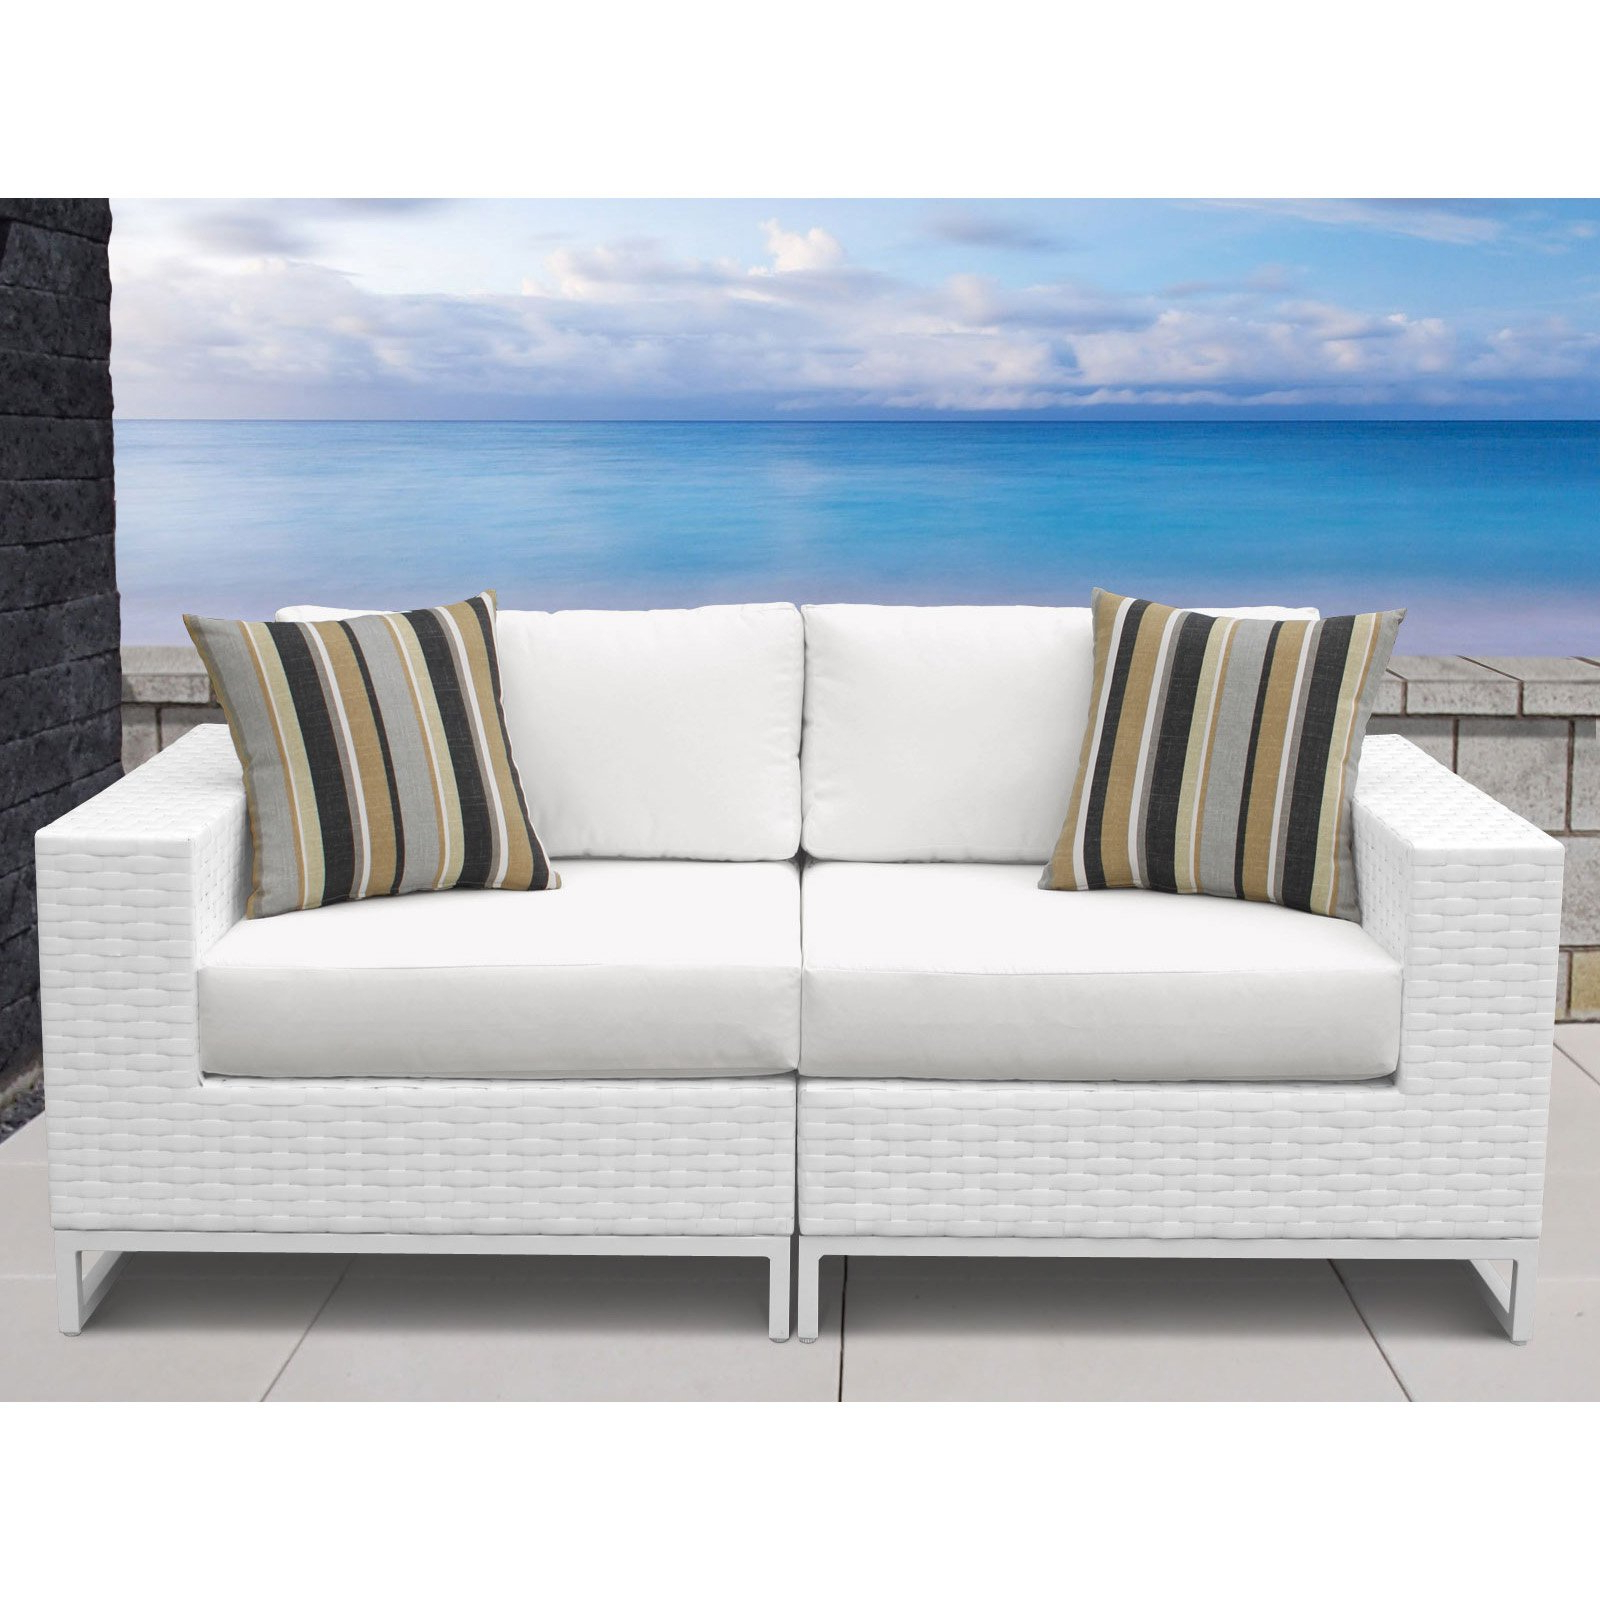 Burruss Patio Sectionals With Cushions Inside Well Liked Outdoor Tk Classics Miami Wicker 2 Piece Patio Sectional (View 25 of 25)